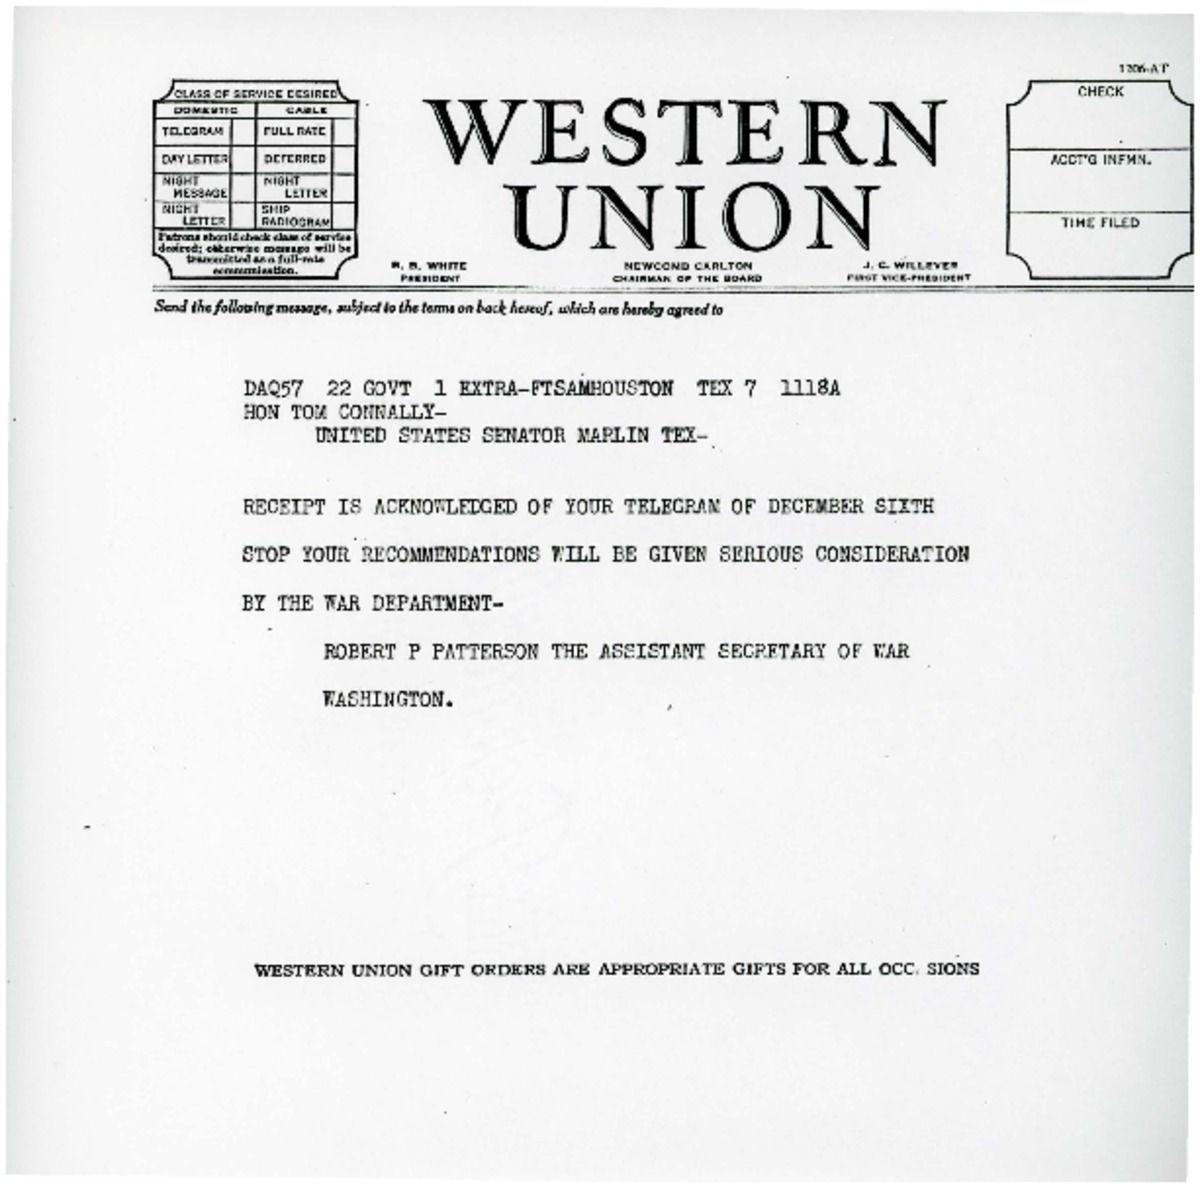 Telegram to Tom Connally from Robert P  Patterson